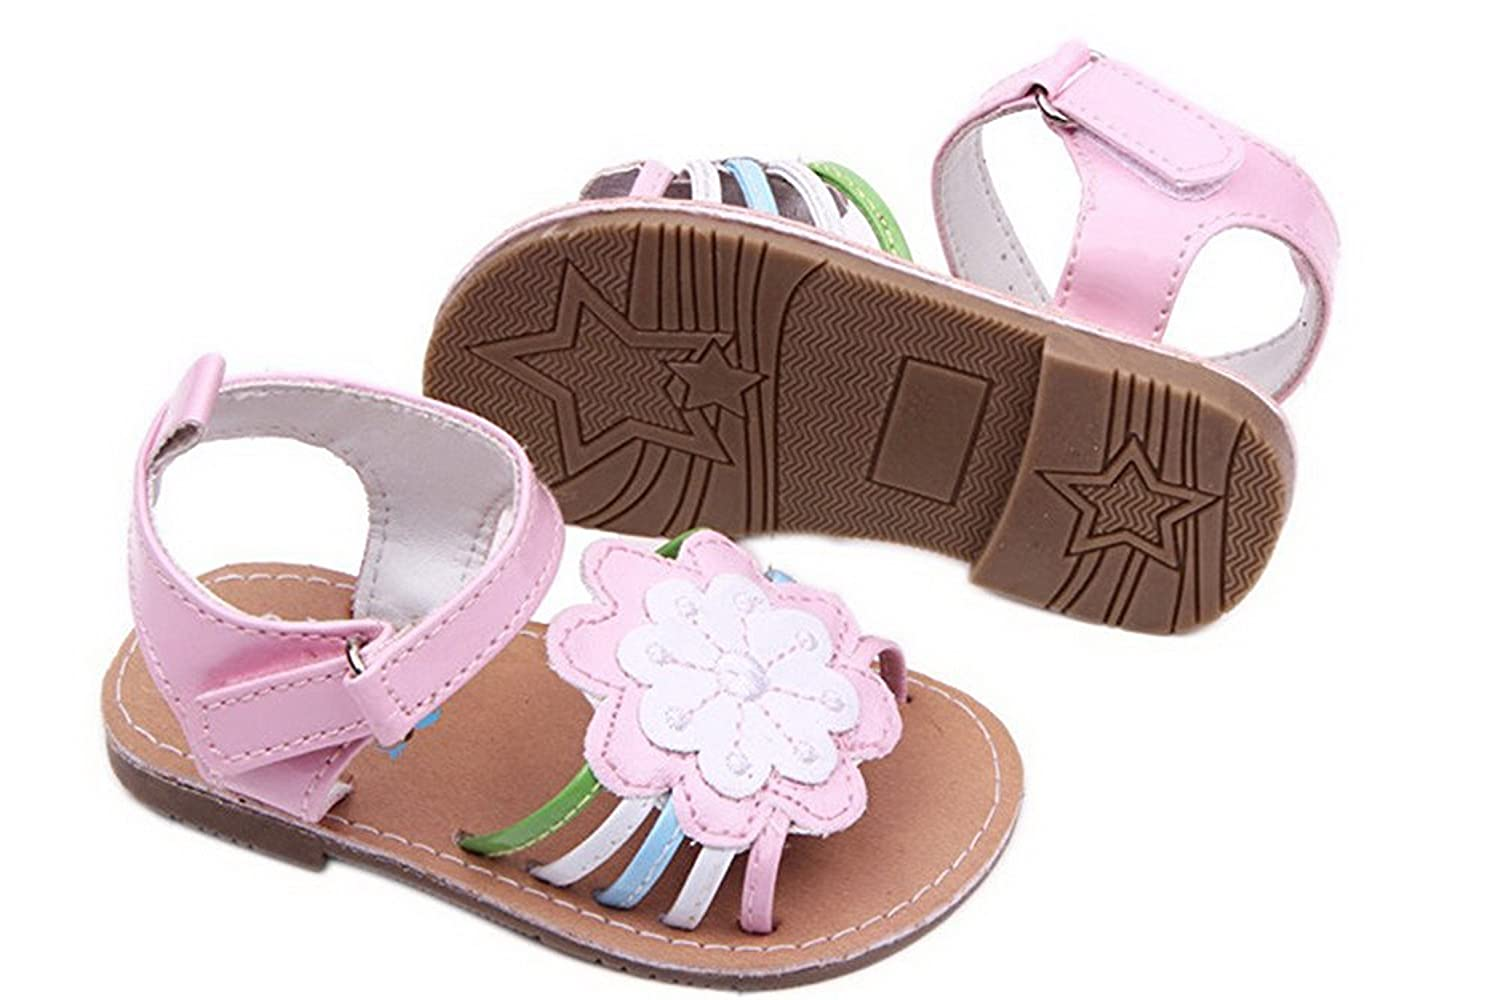 b7dc8066c BABY-QQ hardwearing Infant Toddler Girl Hard Sole Summer Outdoor Sandals  First Walking Shoes